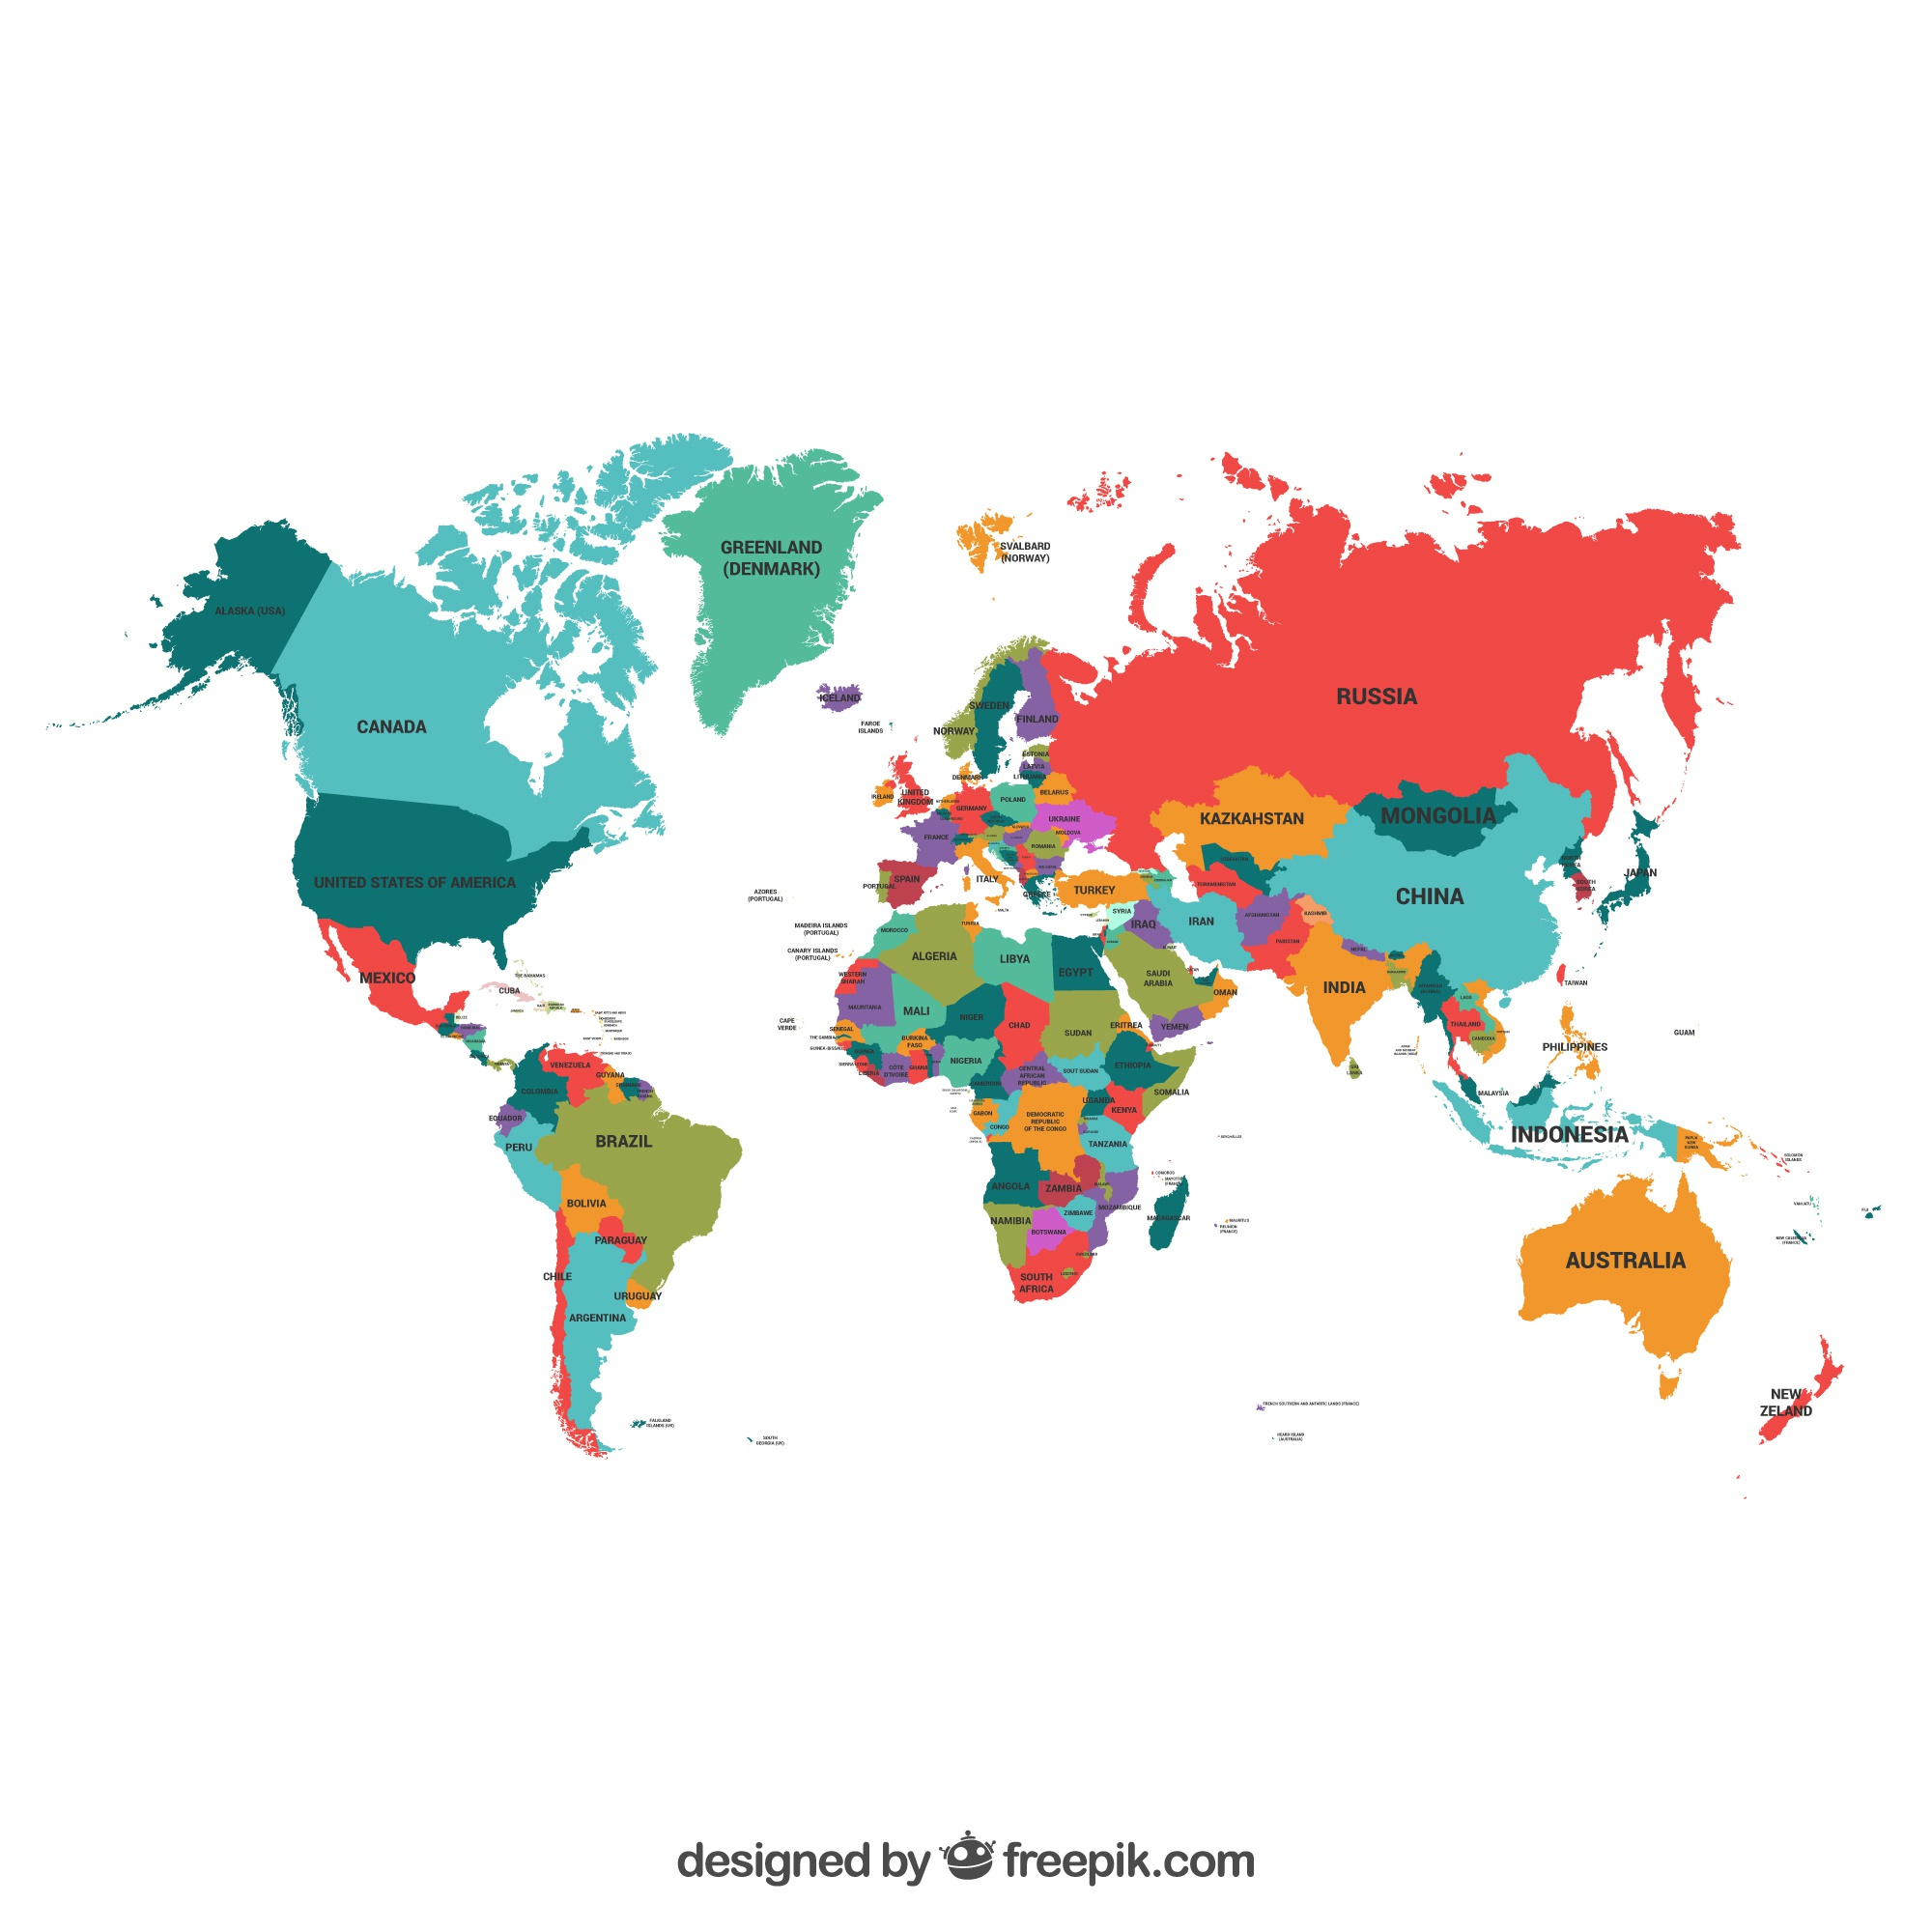 Map vectors 15600 free files in eps format political map of the world gumiabroncs Choice Image